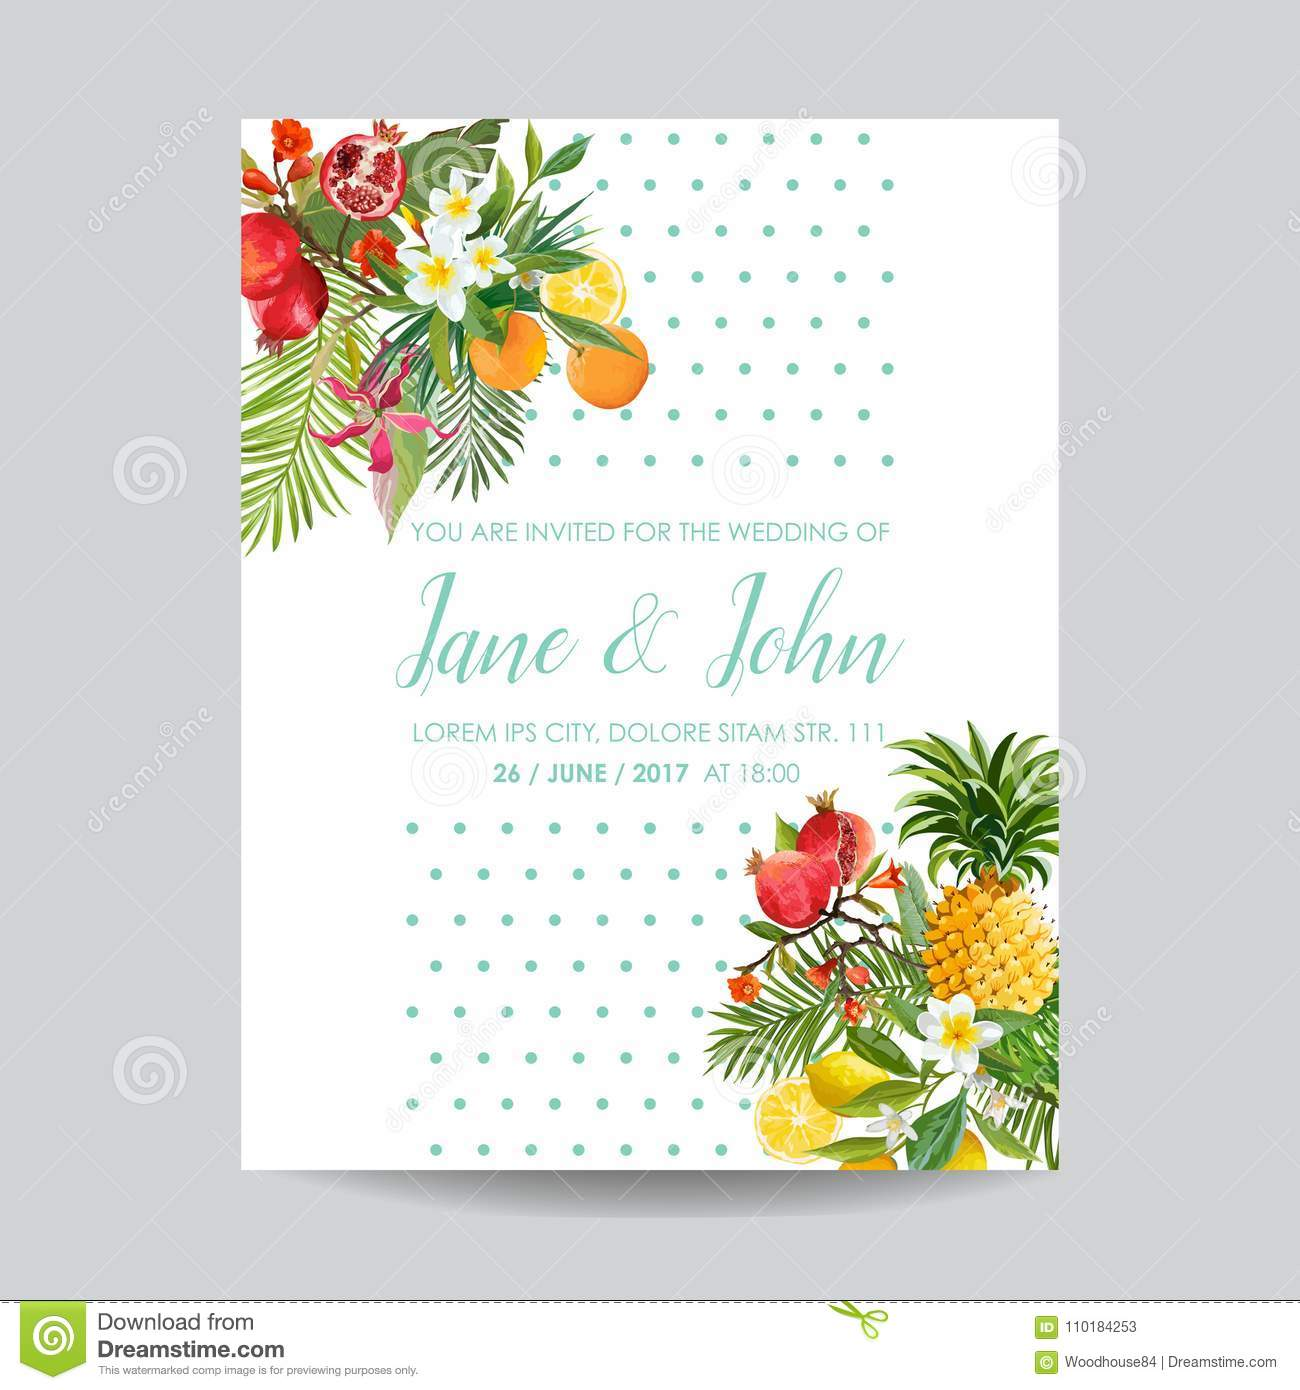 Wedding Invitation With Tropical Fruits And Flowers Greeting Save